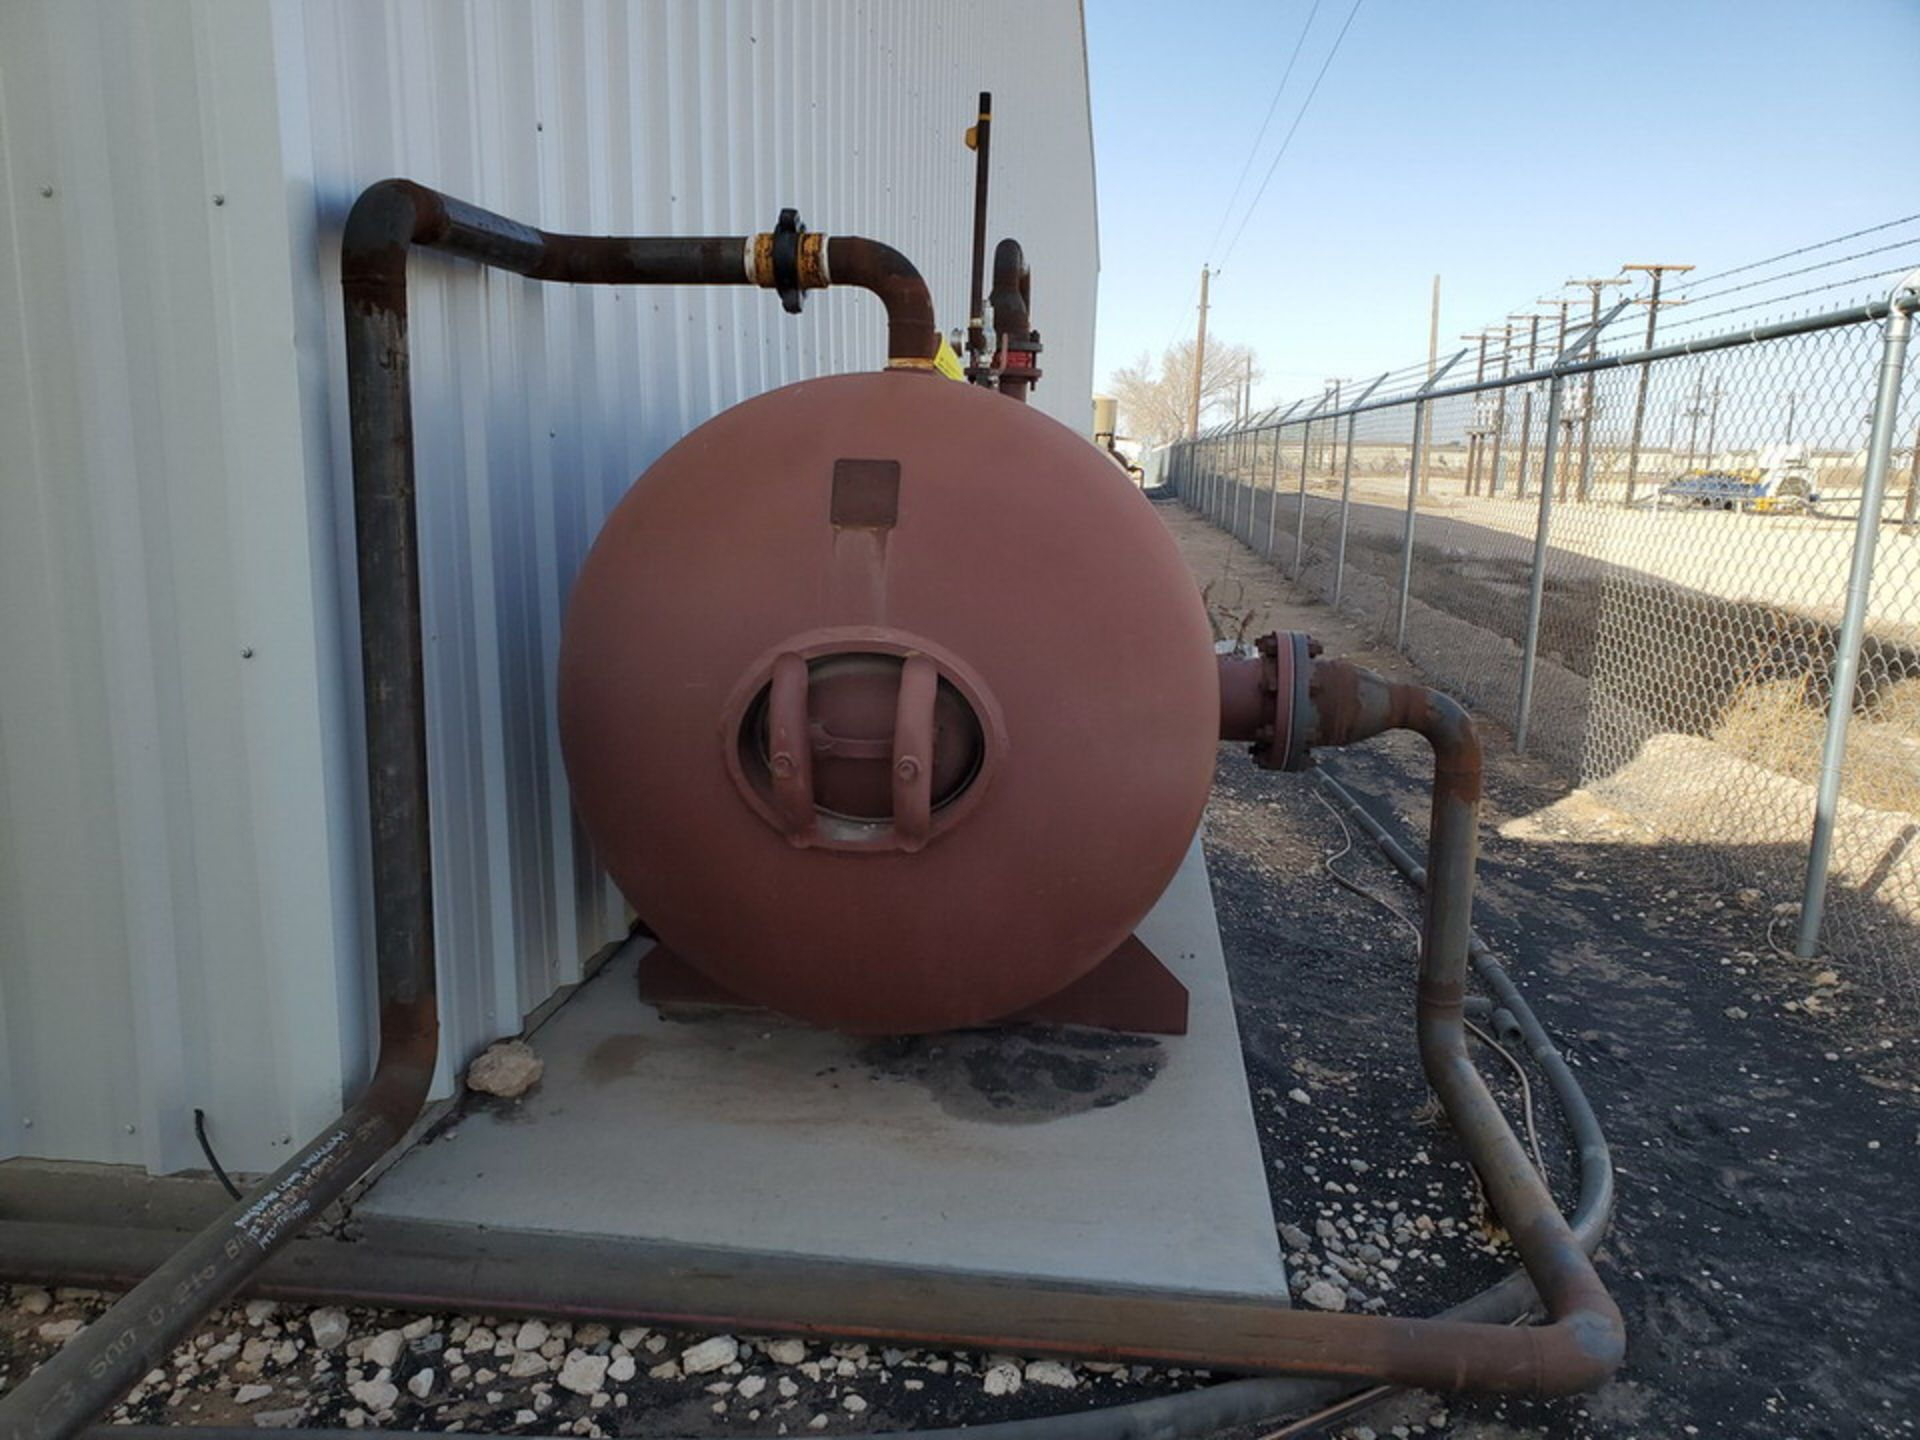 2012 Manchester Air Receiving Tank 4'Dia, 10' S/S; 200psi@400F, -20@200psi - Image 2 of 9